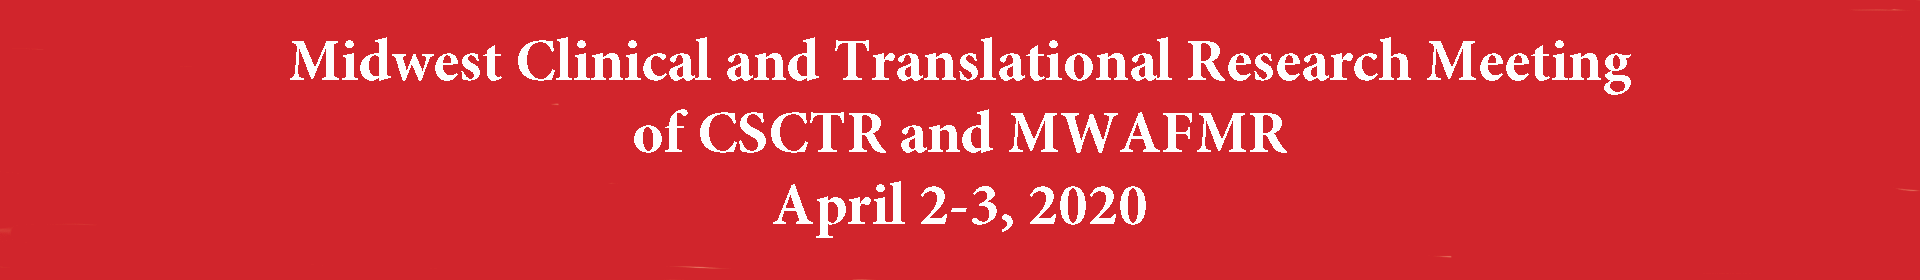 Midwest Clinical and Translational Research Meeting 2020 Event Banner